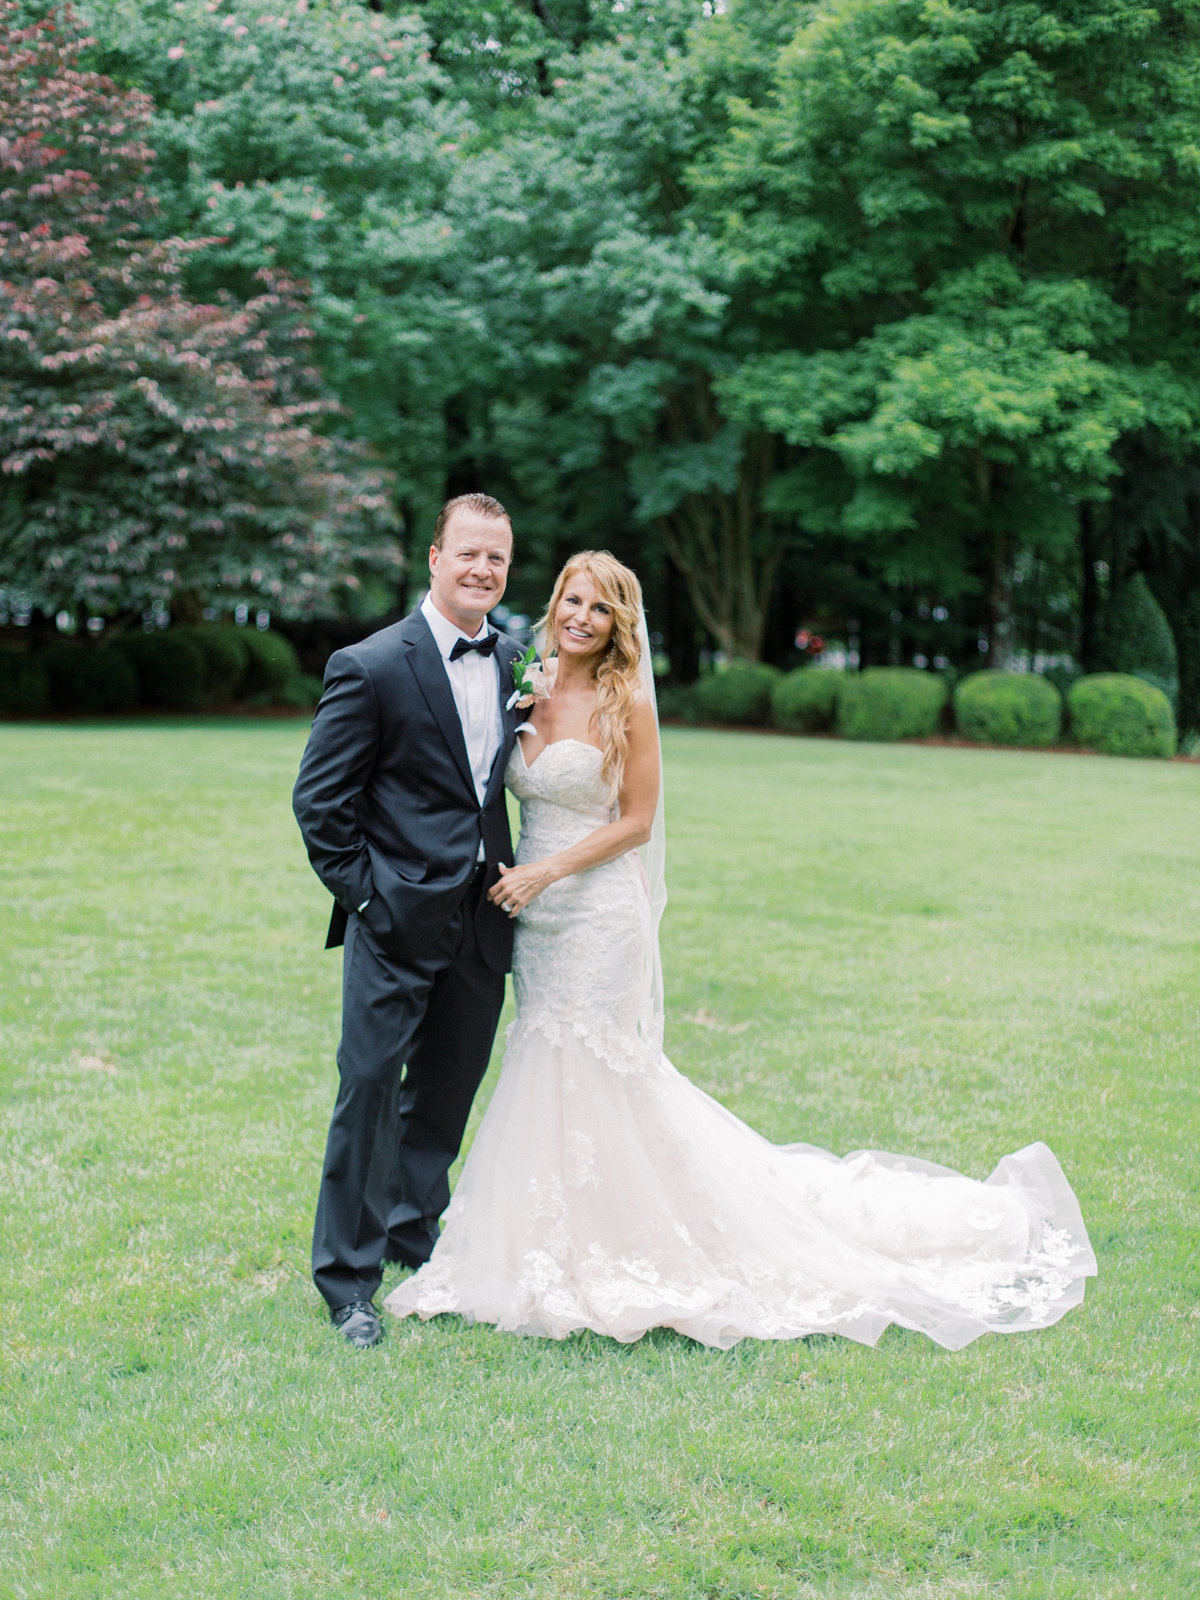 2019-06-08Carrie&MikeWedding-294